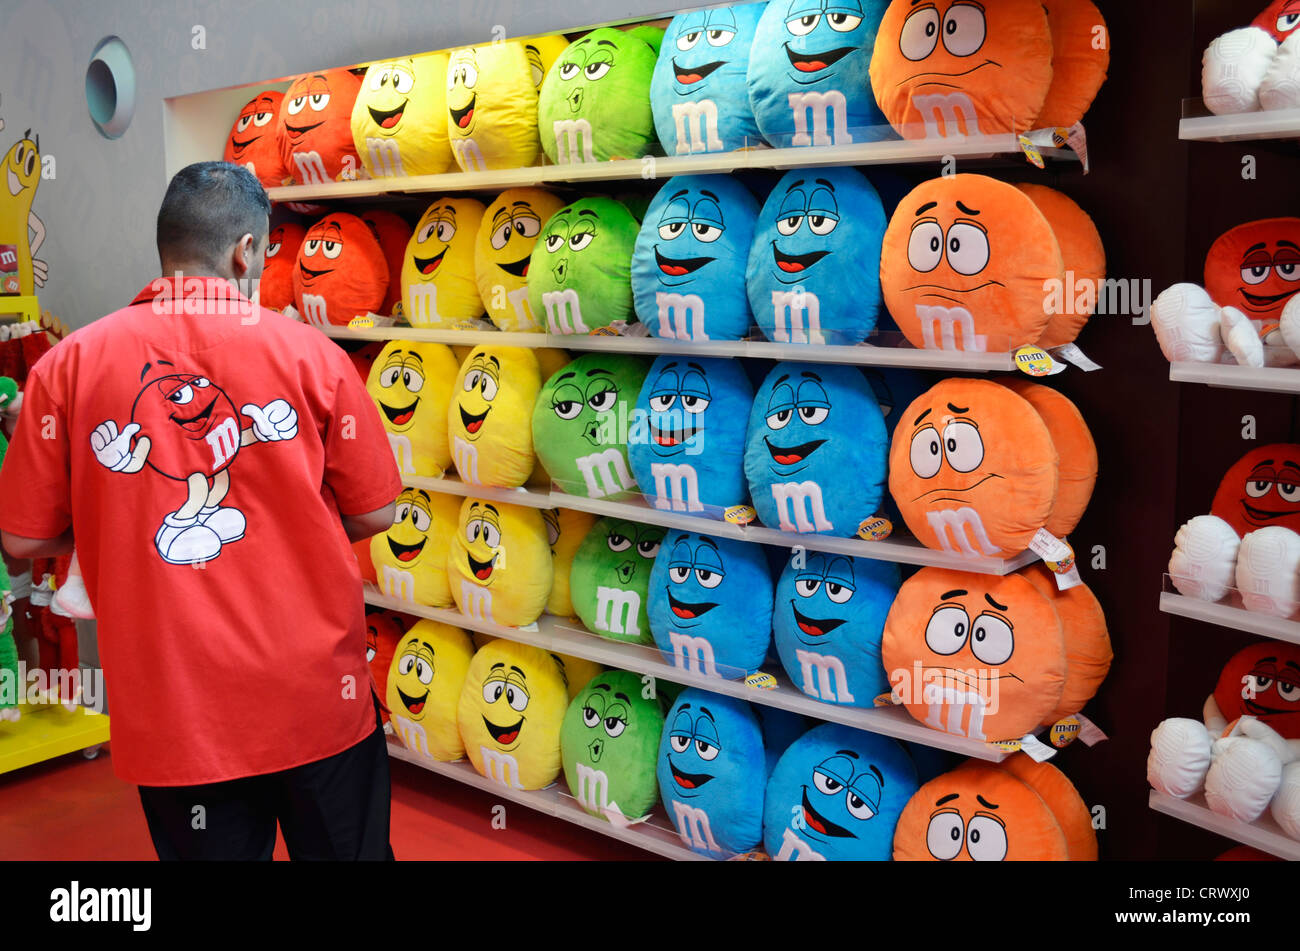 Search Results for M&m Pillow Gifts Gift Stock Photos and Images